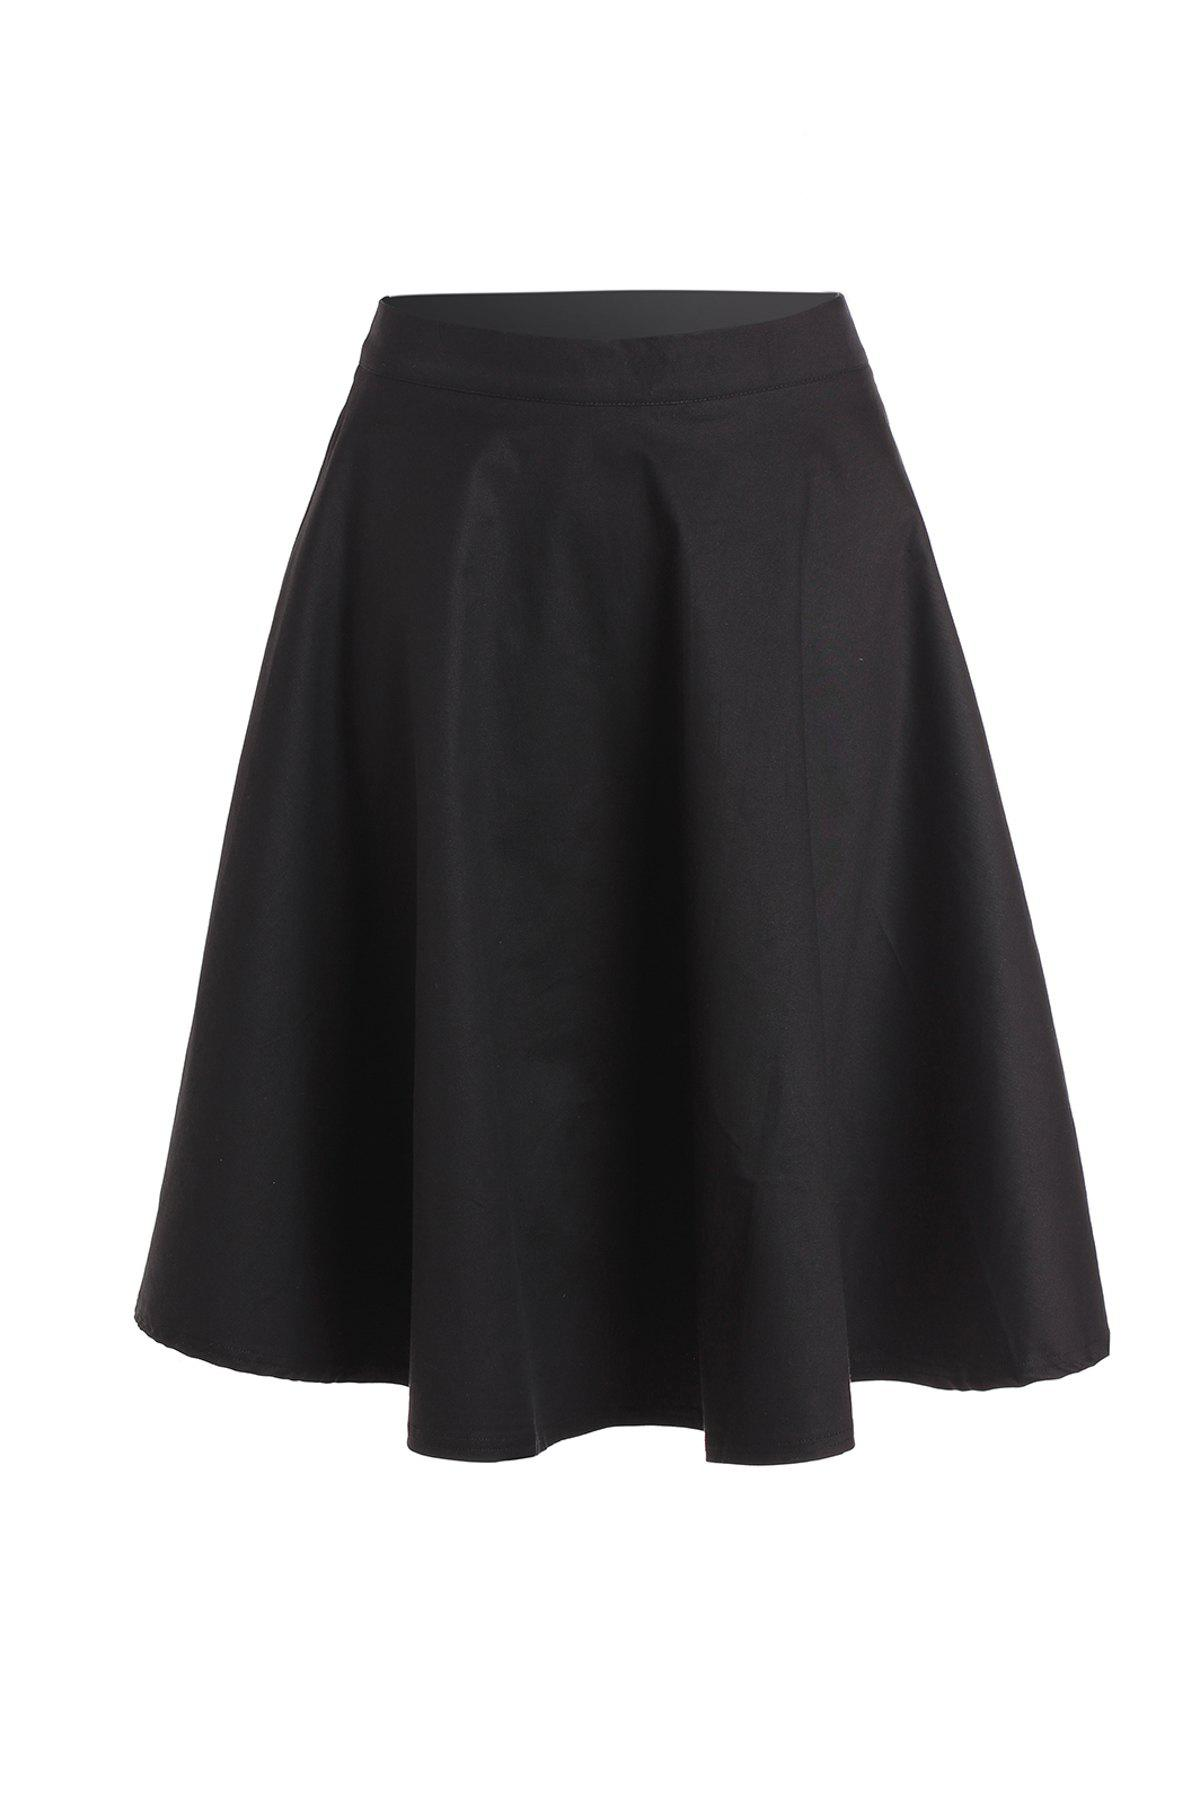 Noble Solid Color High Waist A-Line Ball Skirt For Women - BLACK M